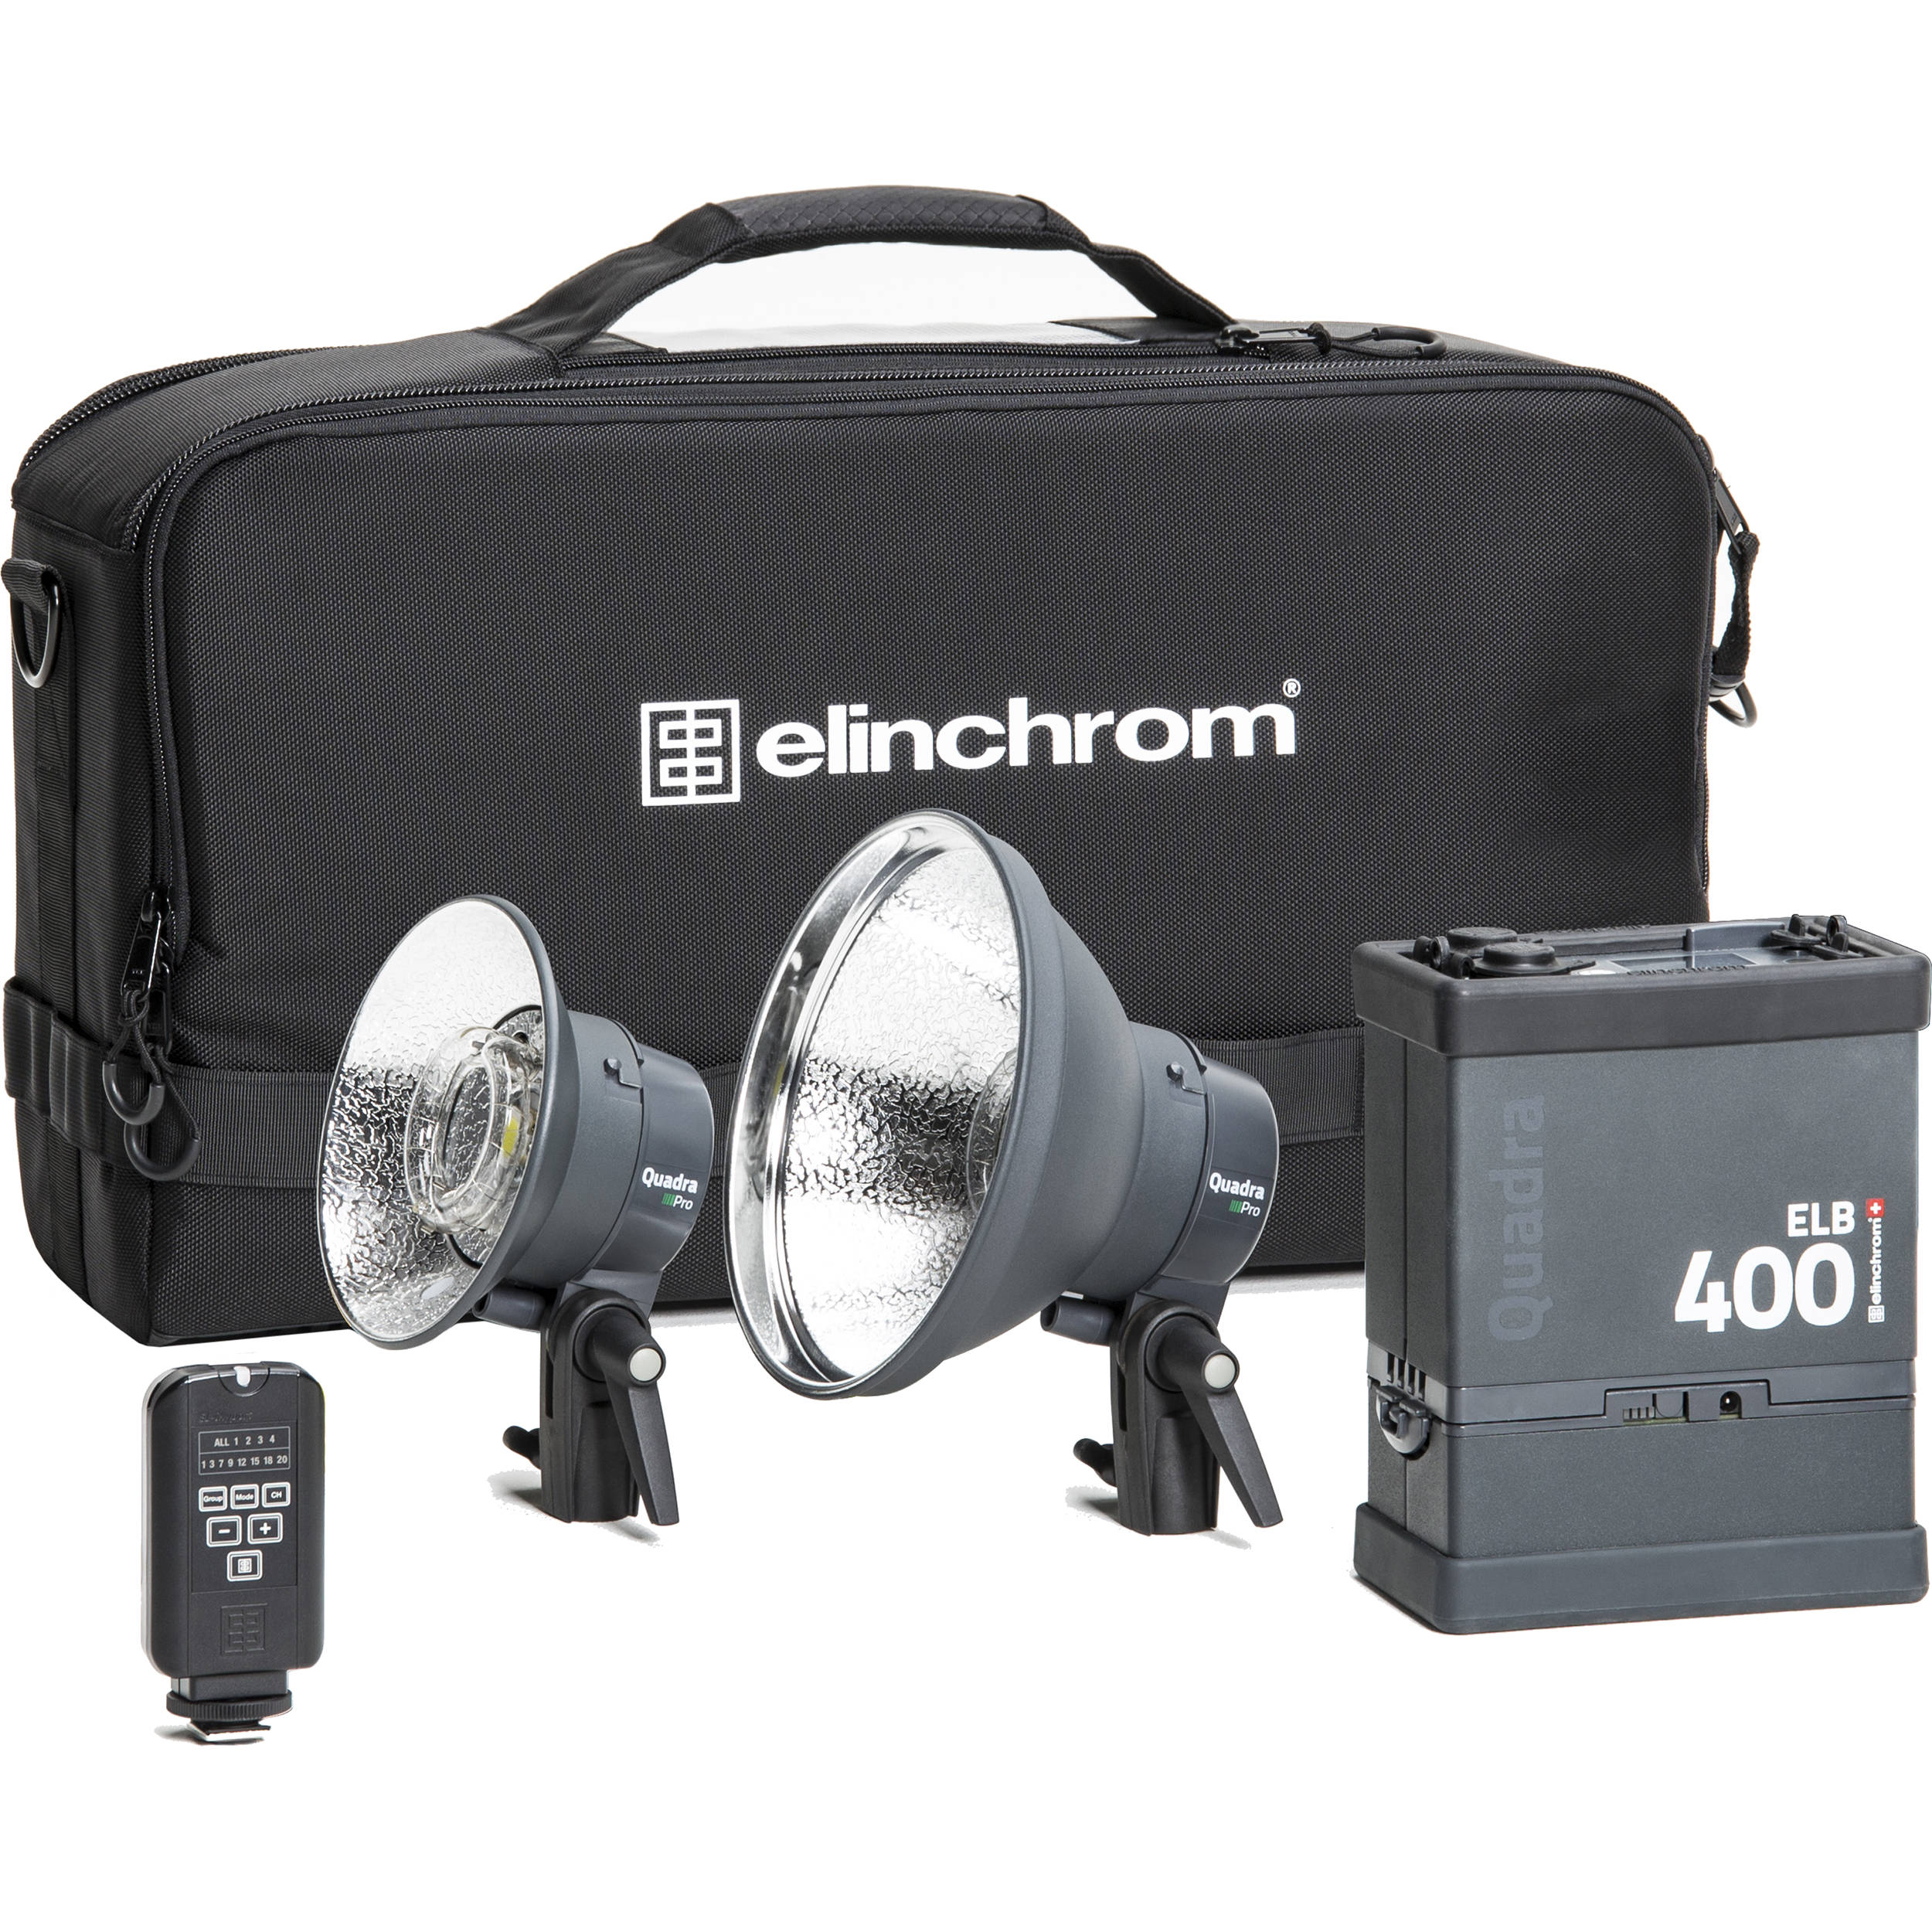 Elinchrom Frx 400 Studio Lighting Kit: Elinchrom ELB 400 Dual Pro To Go Kit EL10420.1 B&H Photo Video